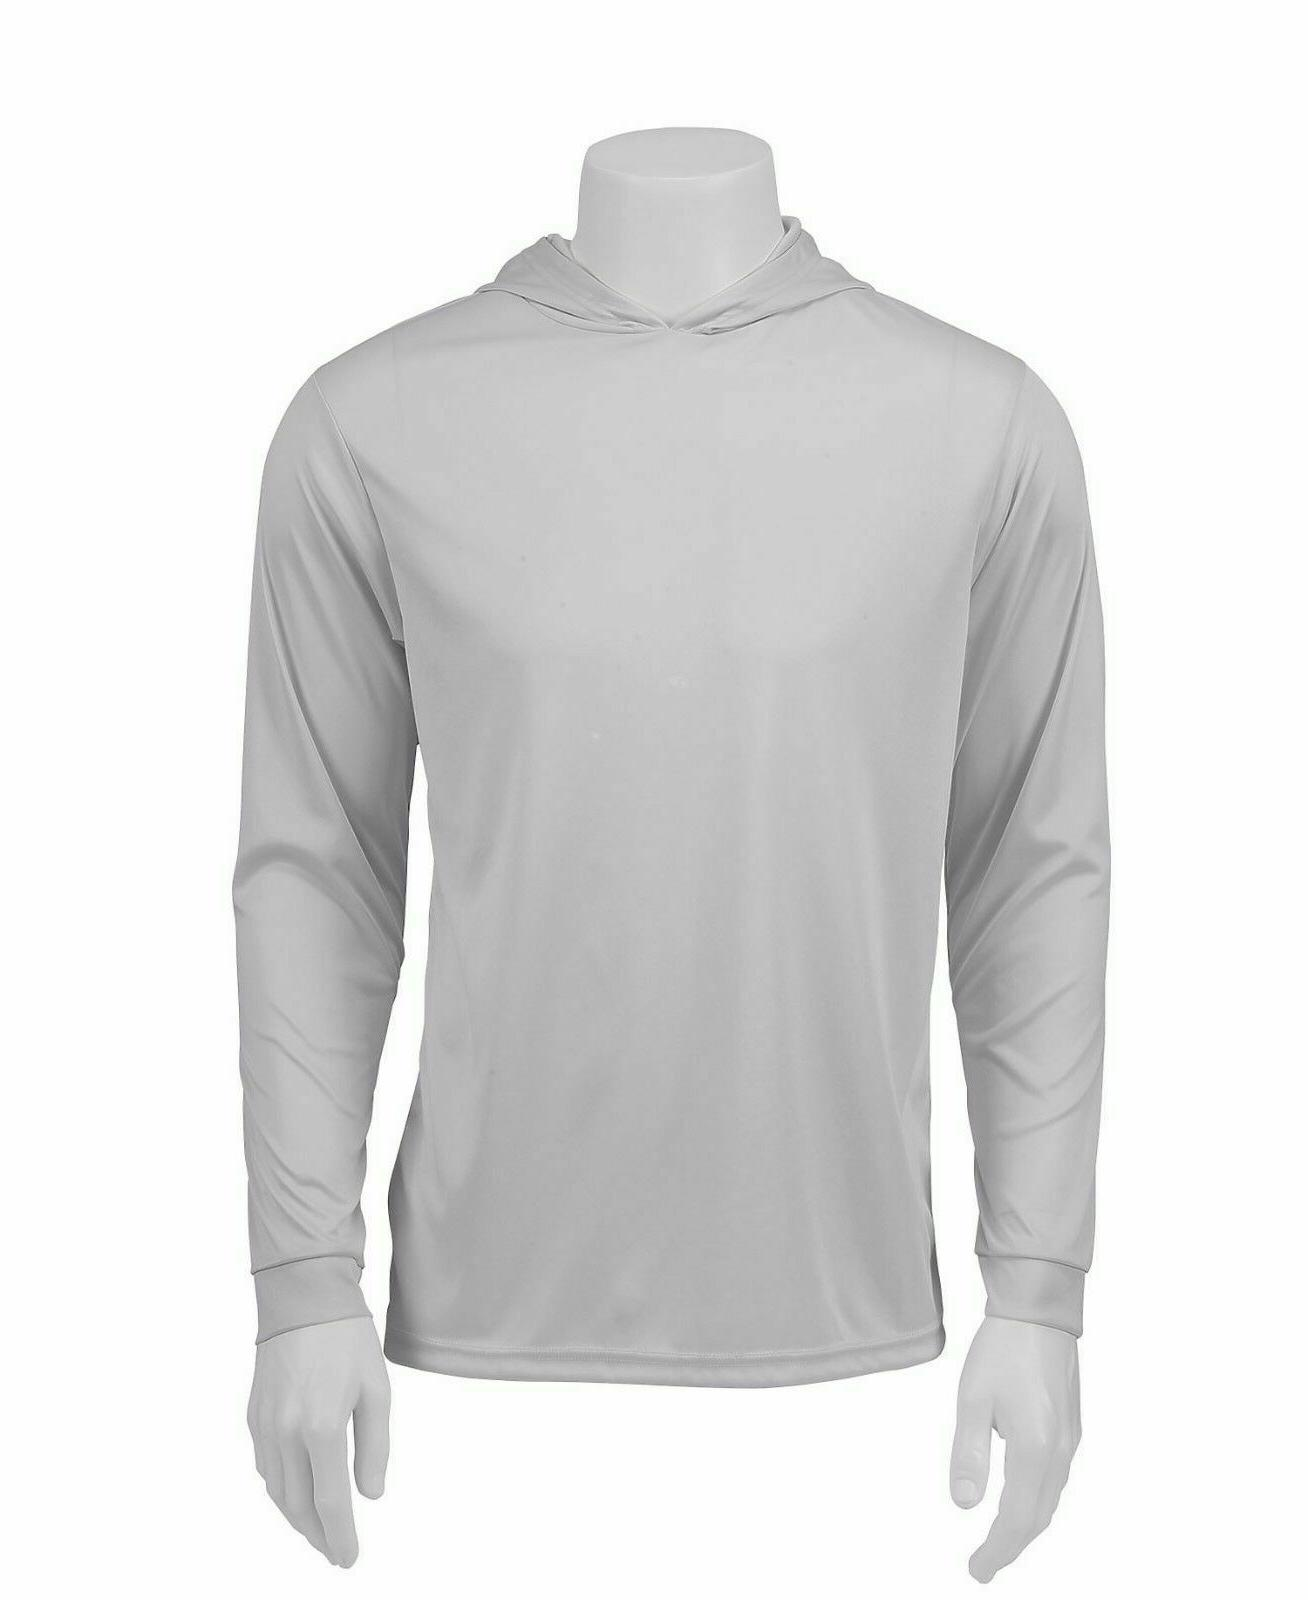 Paragon Adult Long Sleeve UPF 50+ Boat Protection Hooded